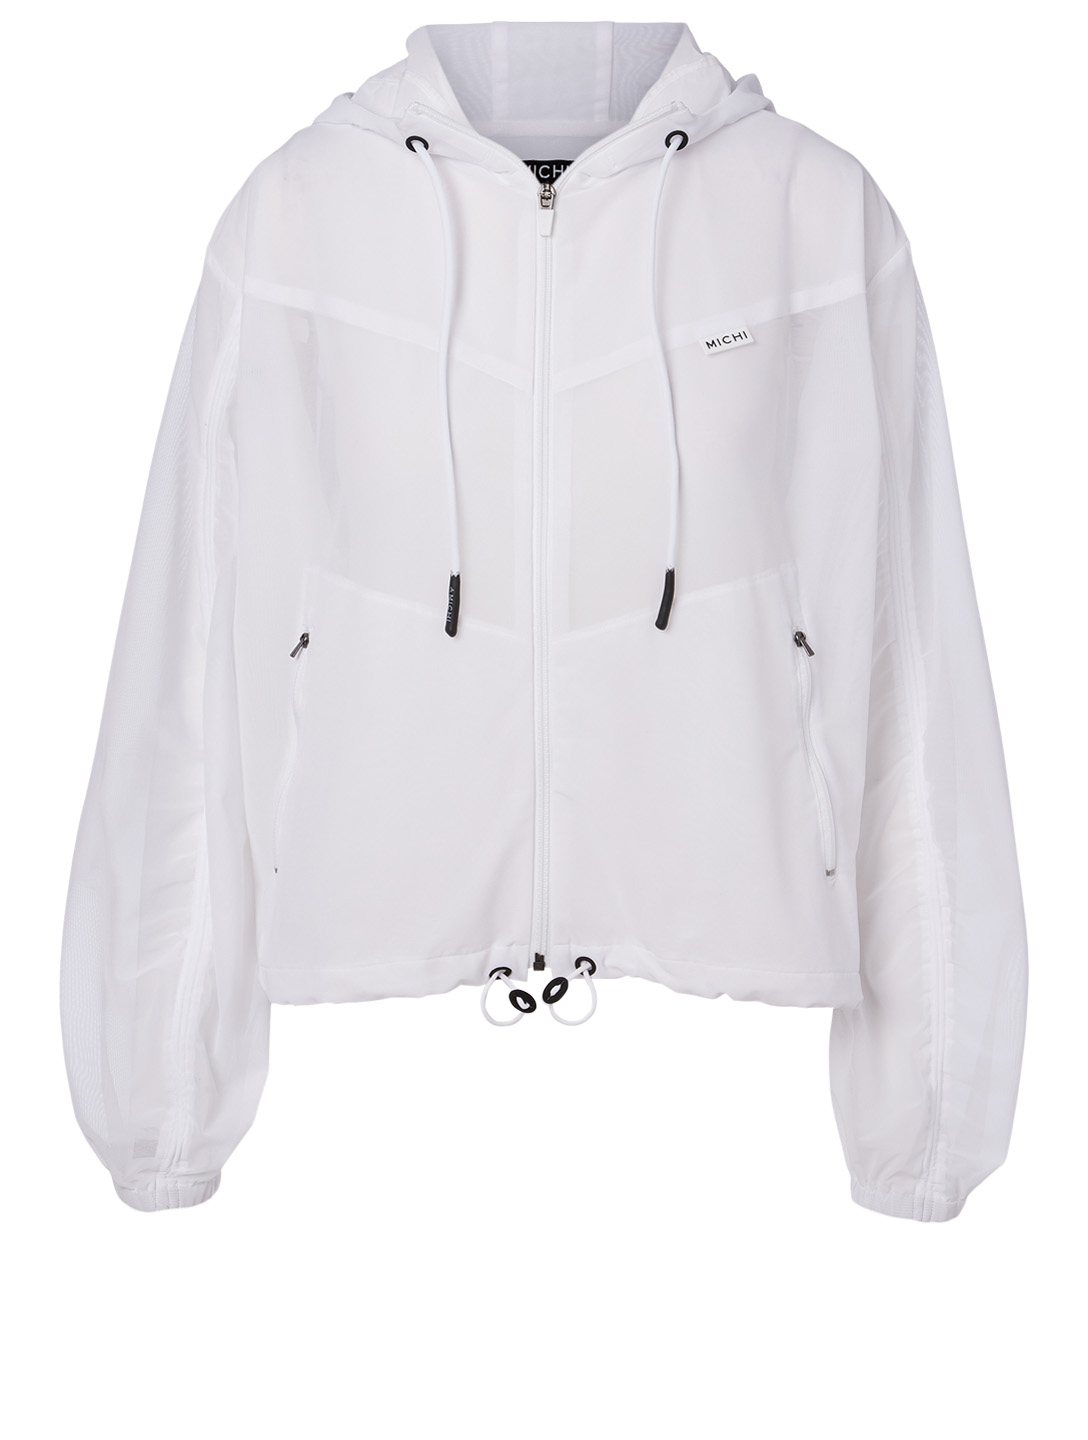 MICHI Indy Workout Jacket With Hood Women's White